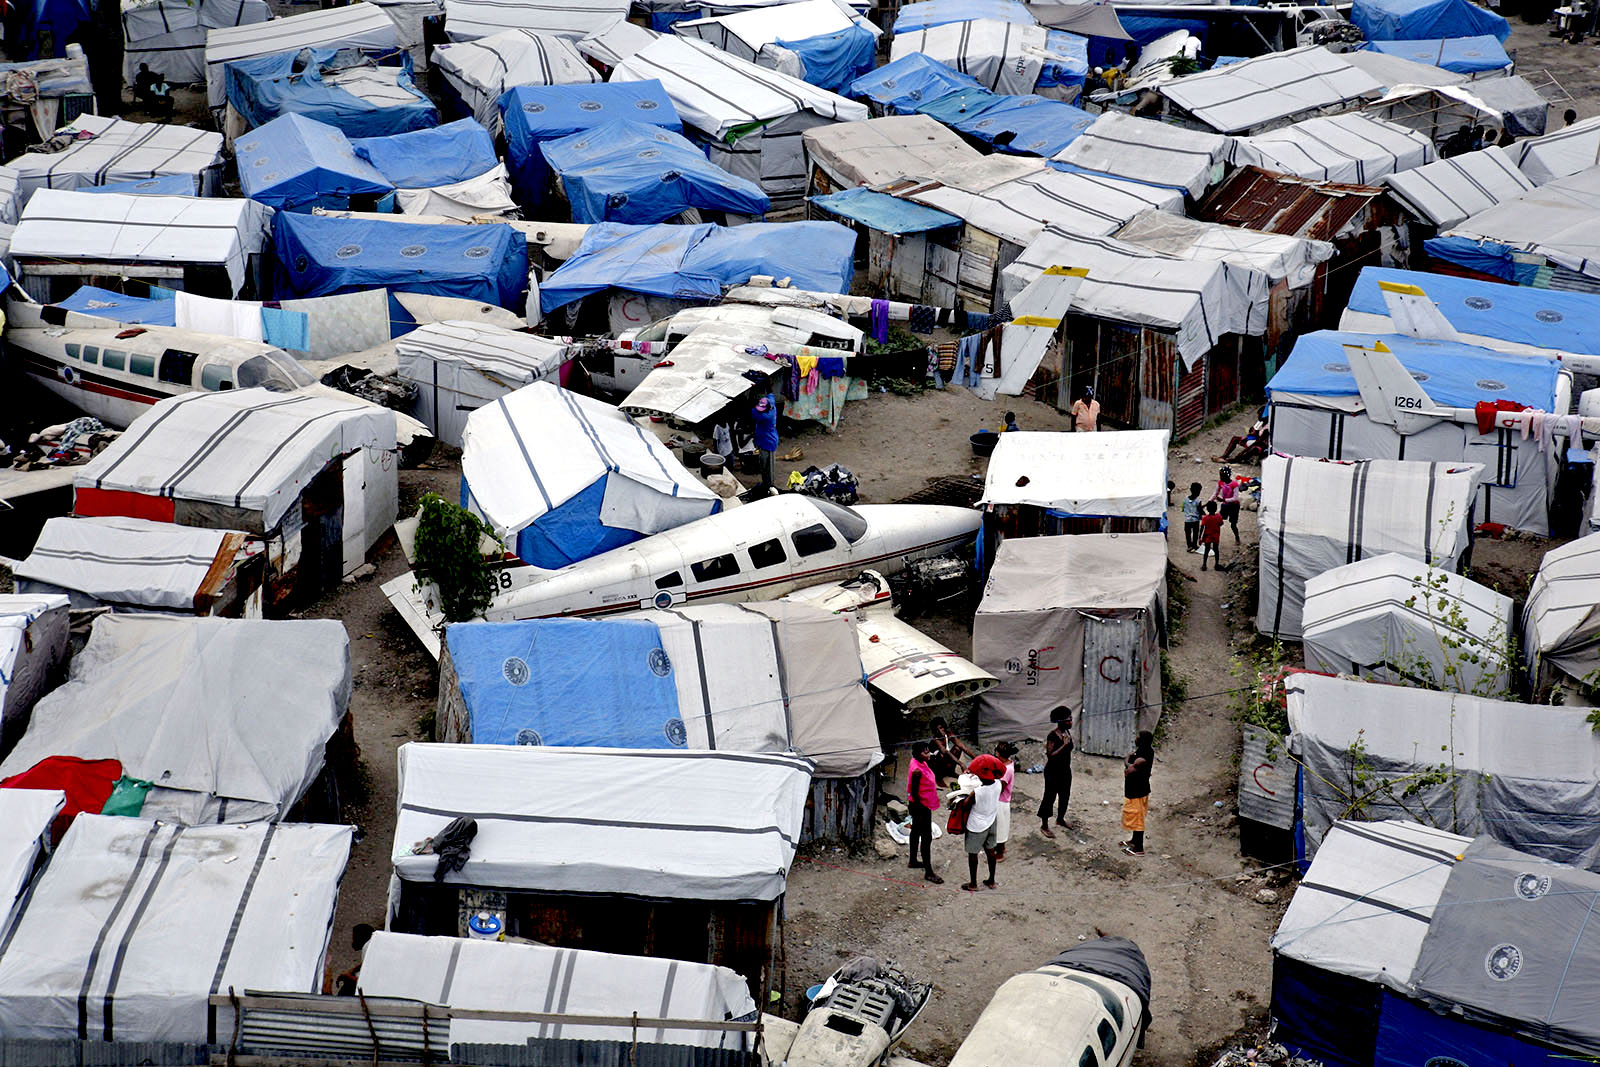 One of many camps for residents who's houses were destroyed in the earthquake.